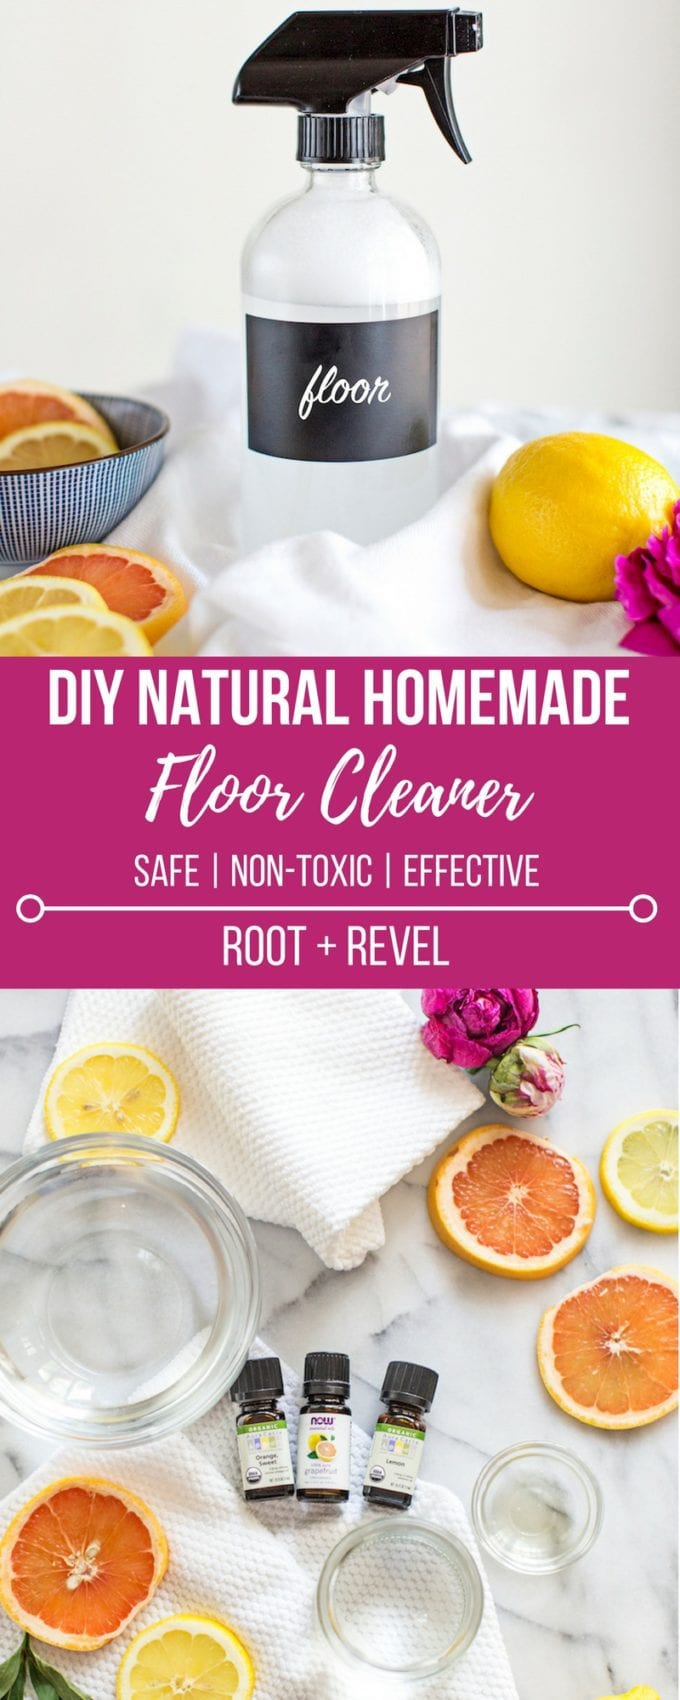 Diy Natural Homemade Floor Cleaner Root Revel